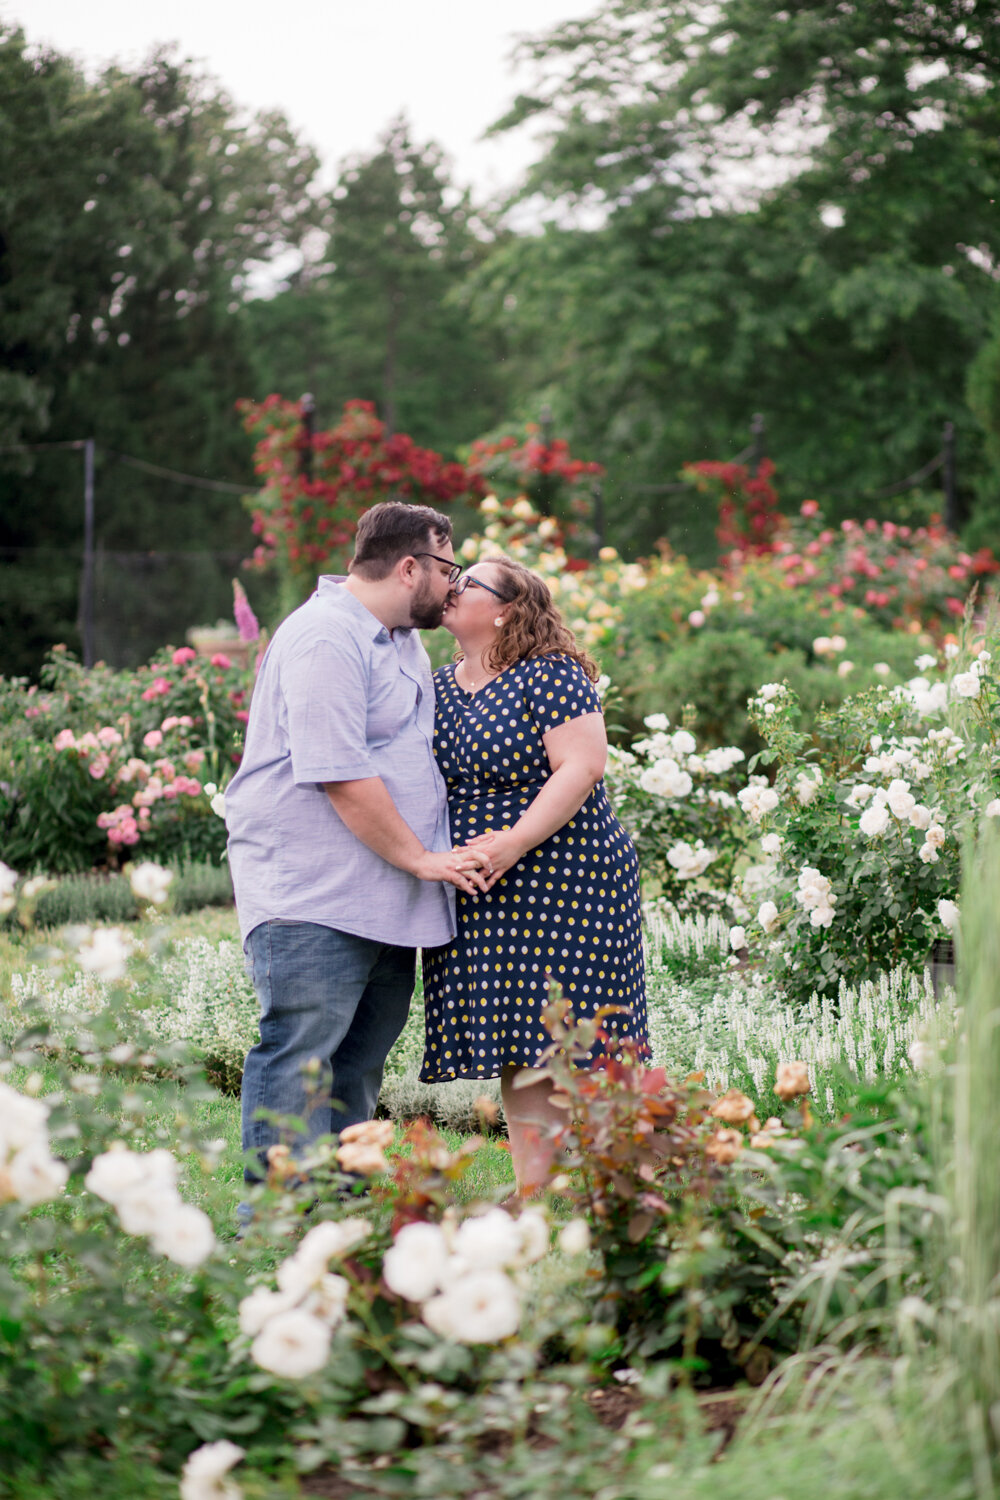 morris-arboretum-chestnut-hill-garden-engagement-session-philadelphia-wedding-photography-24.jpg